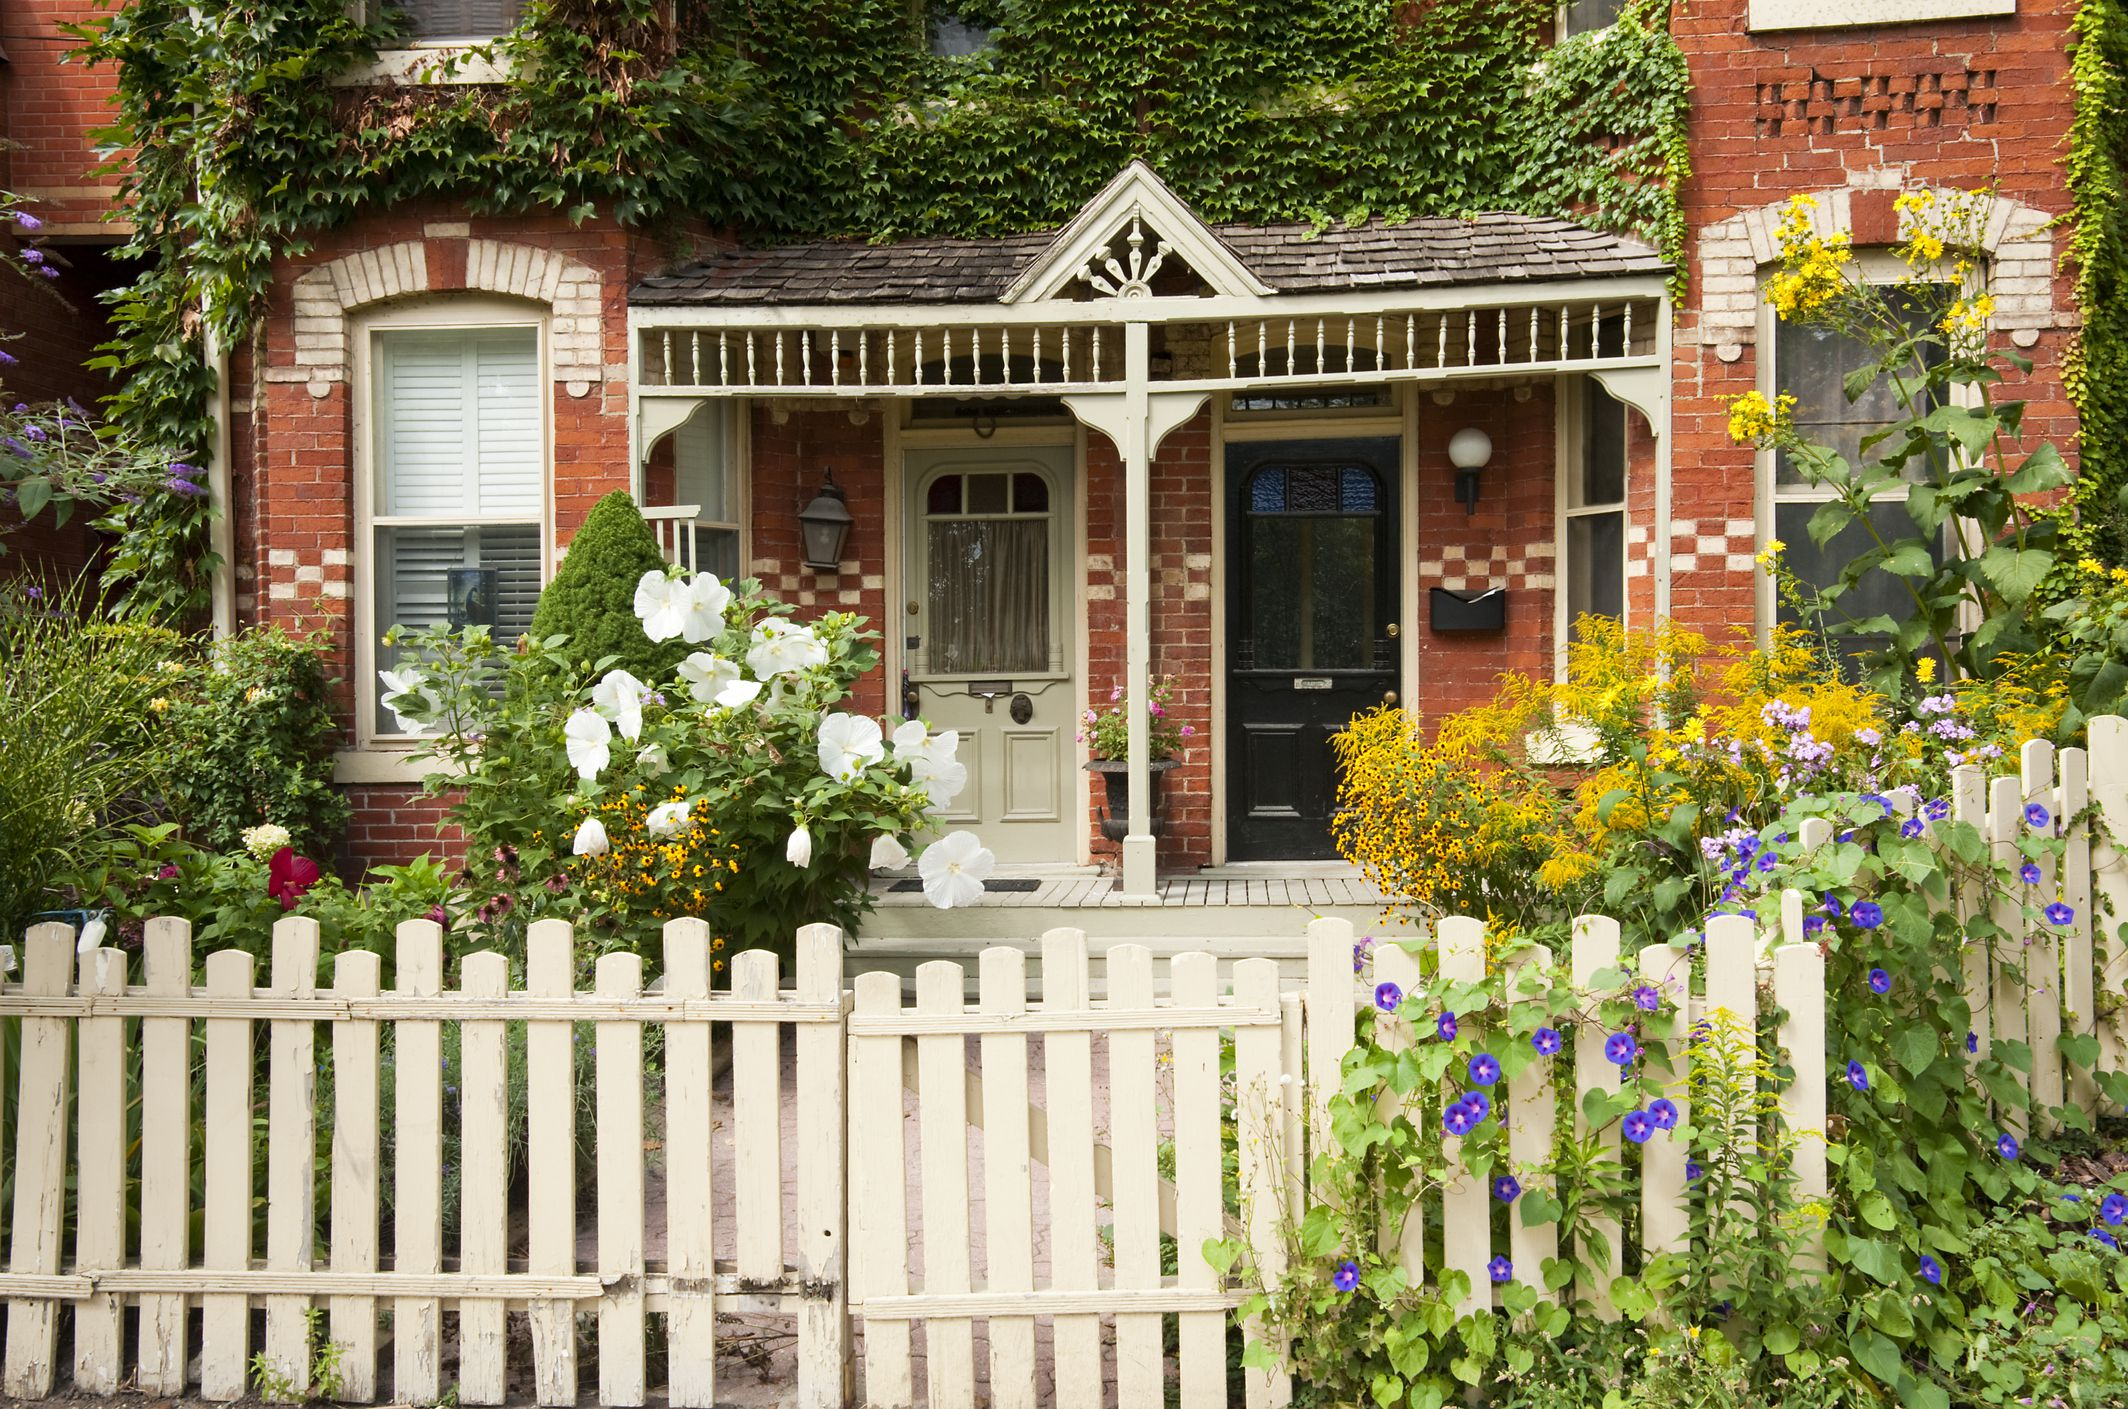 Old style red brick row houses with a white picket fences